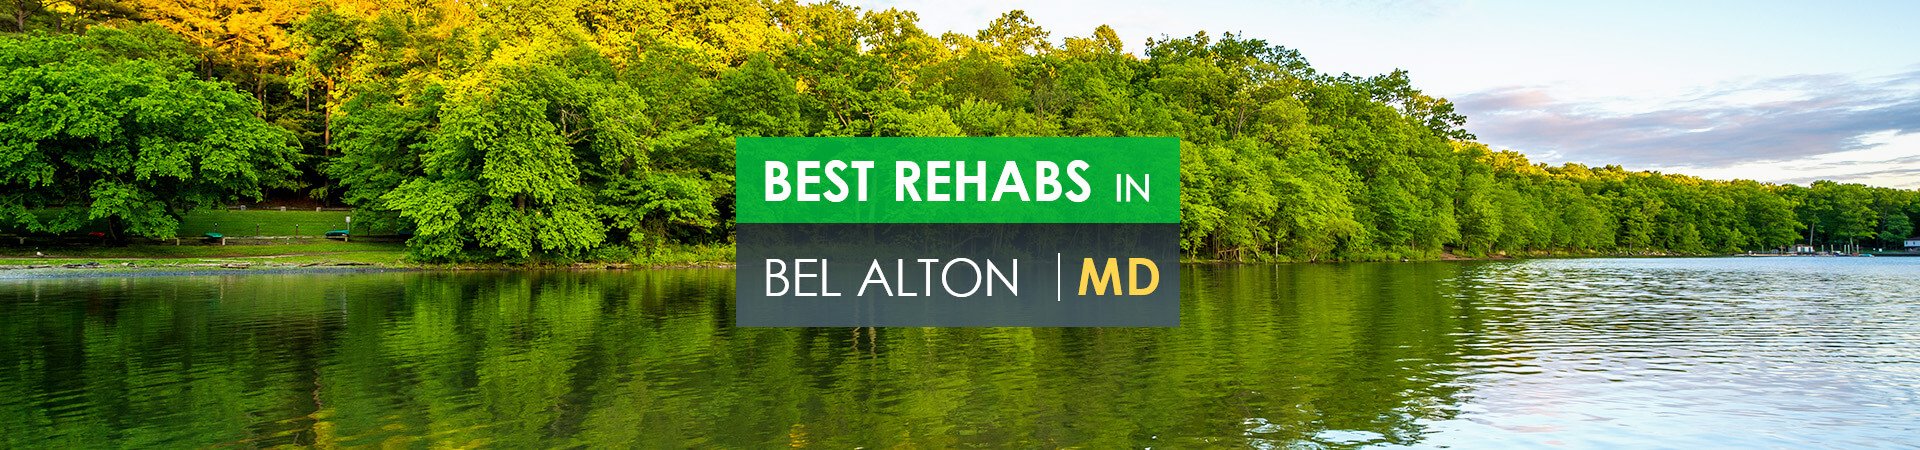 Best rehabs in Bel Alton, MD